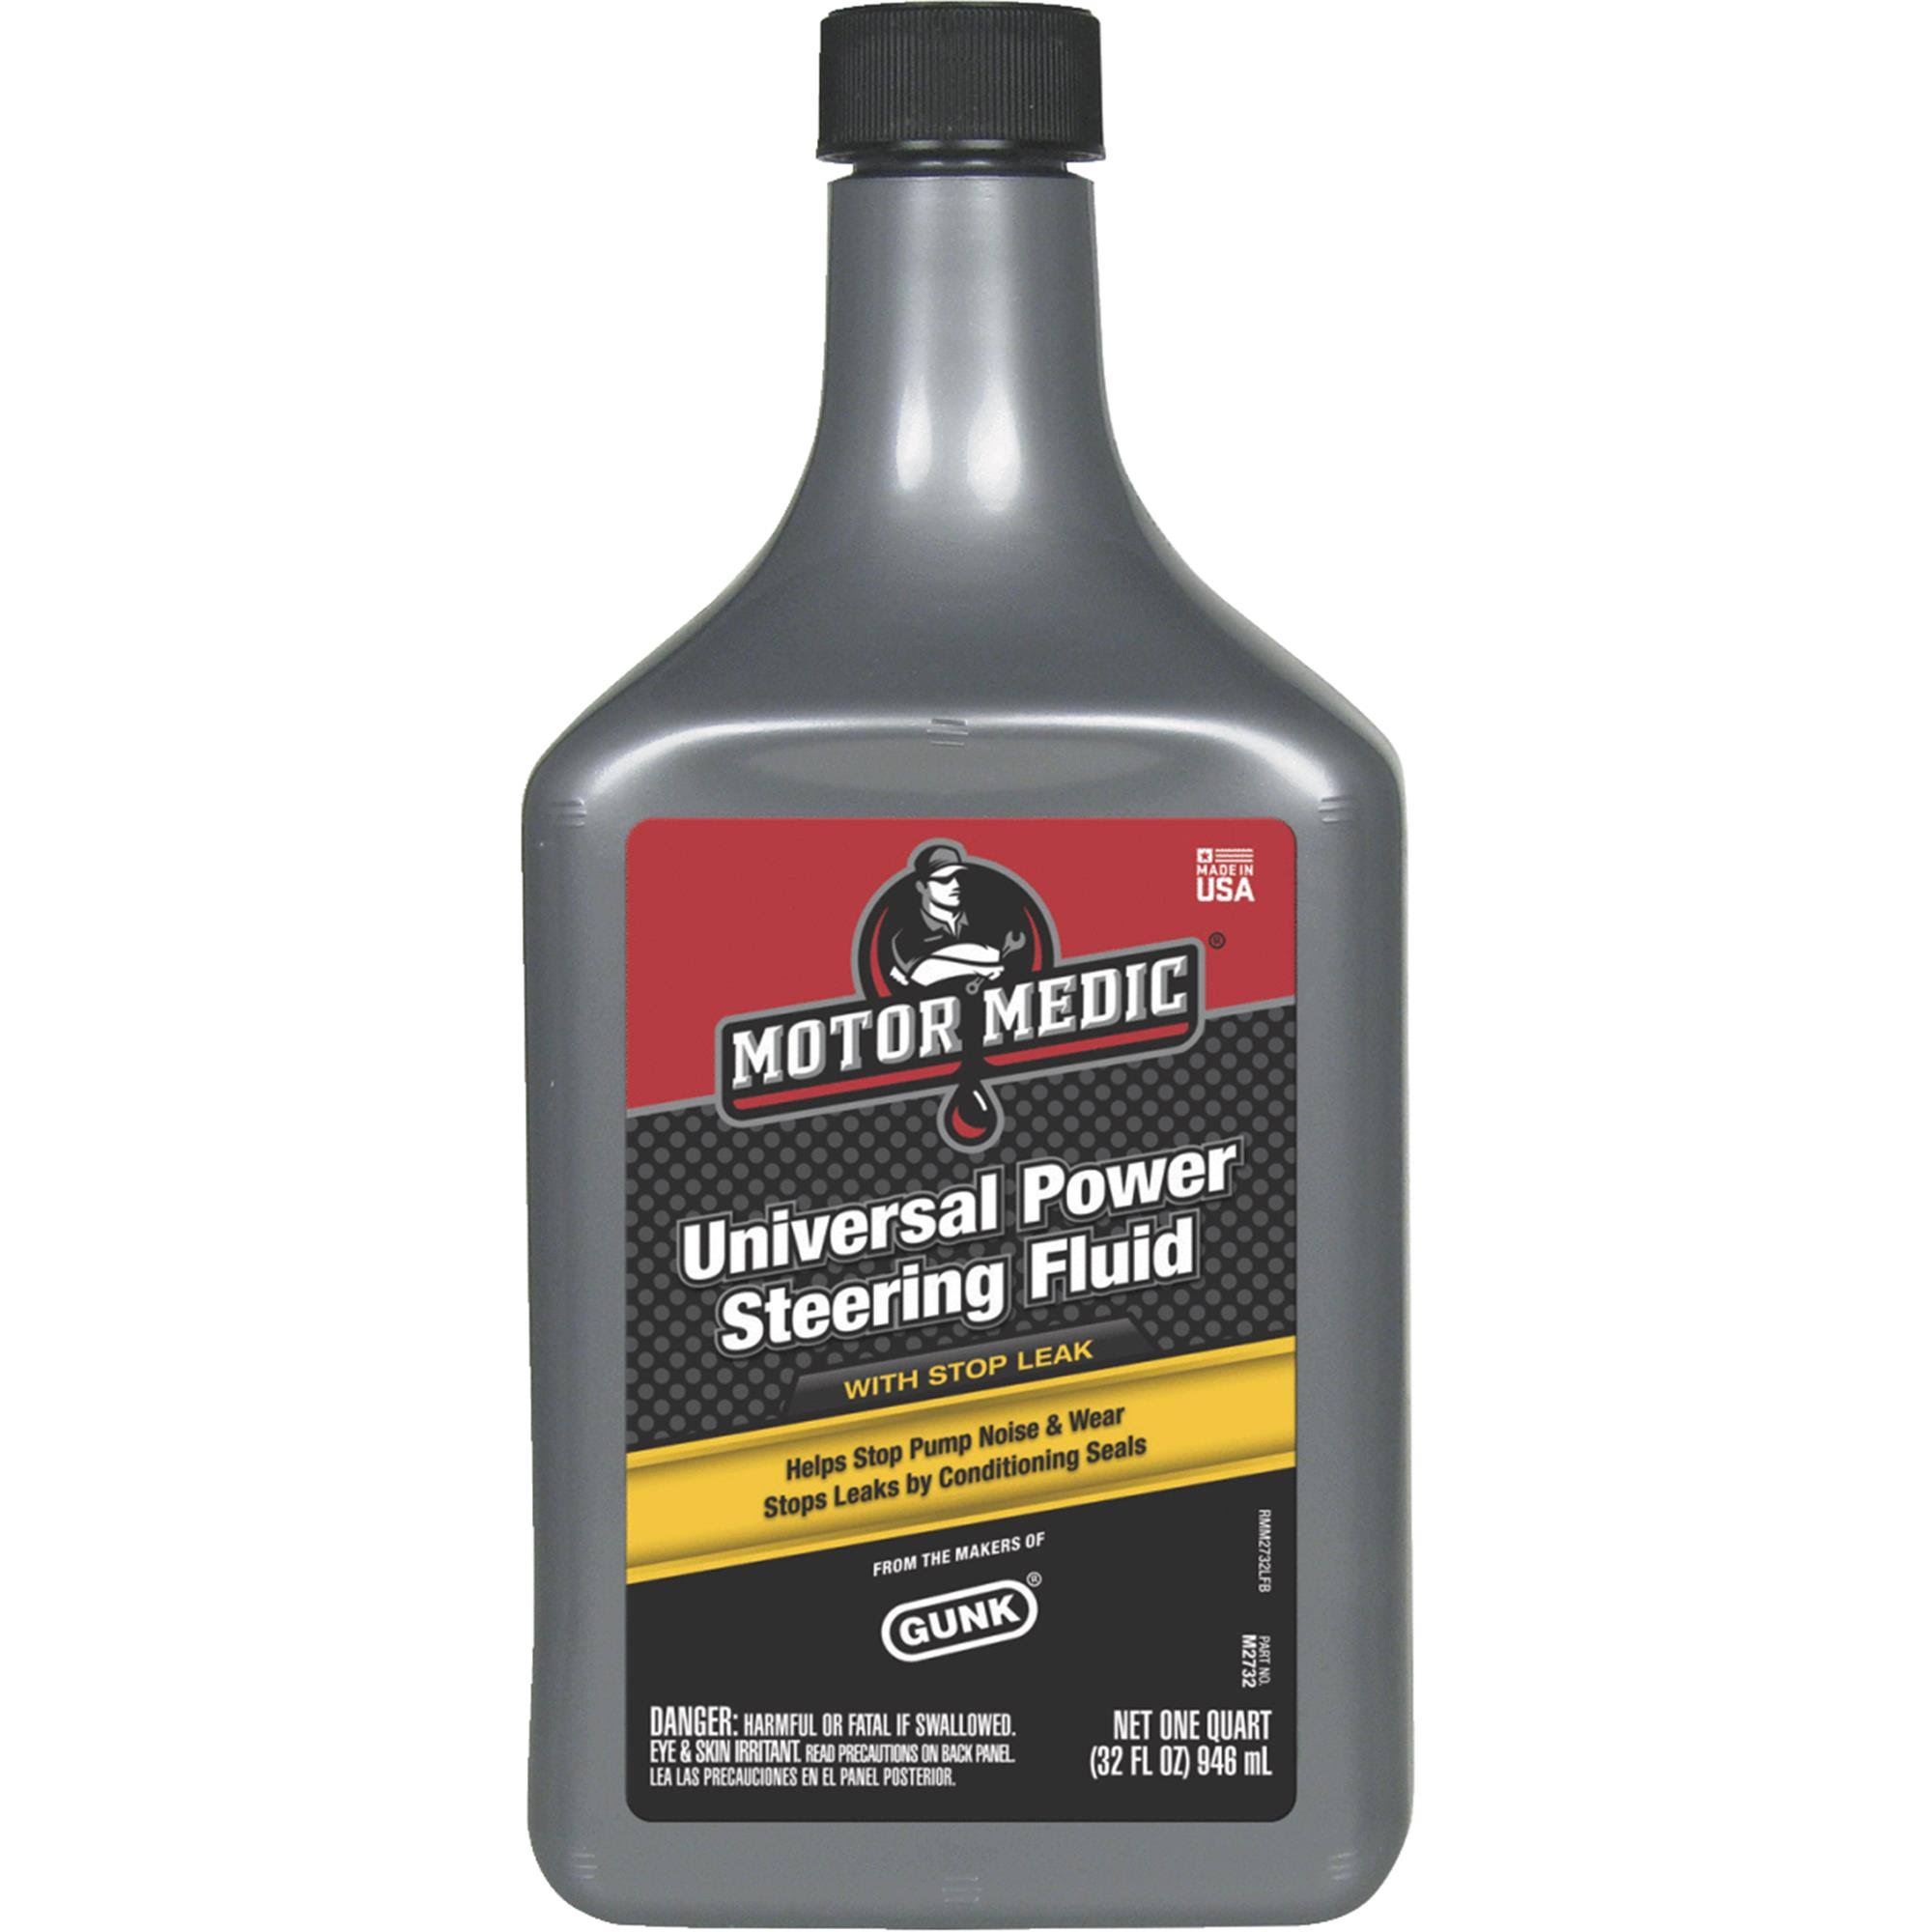 Motor Medic Steering Fluid, Universal Power, With Stop Leak - 1 quart